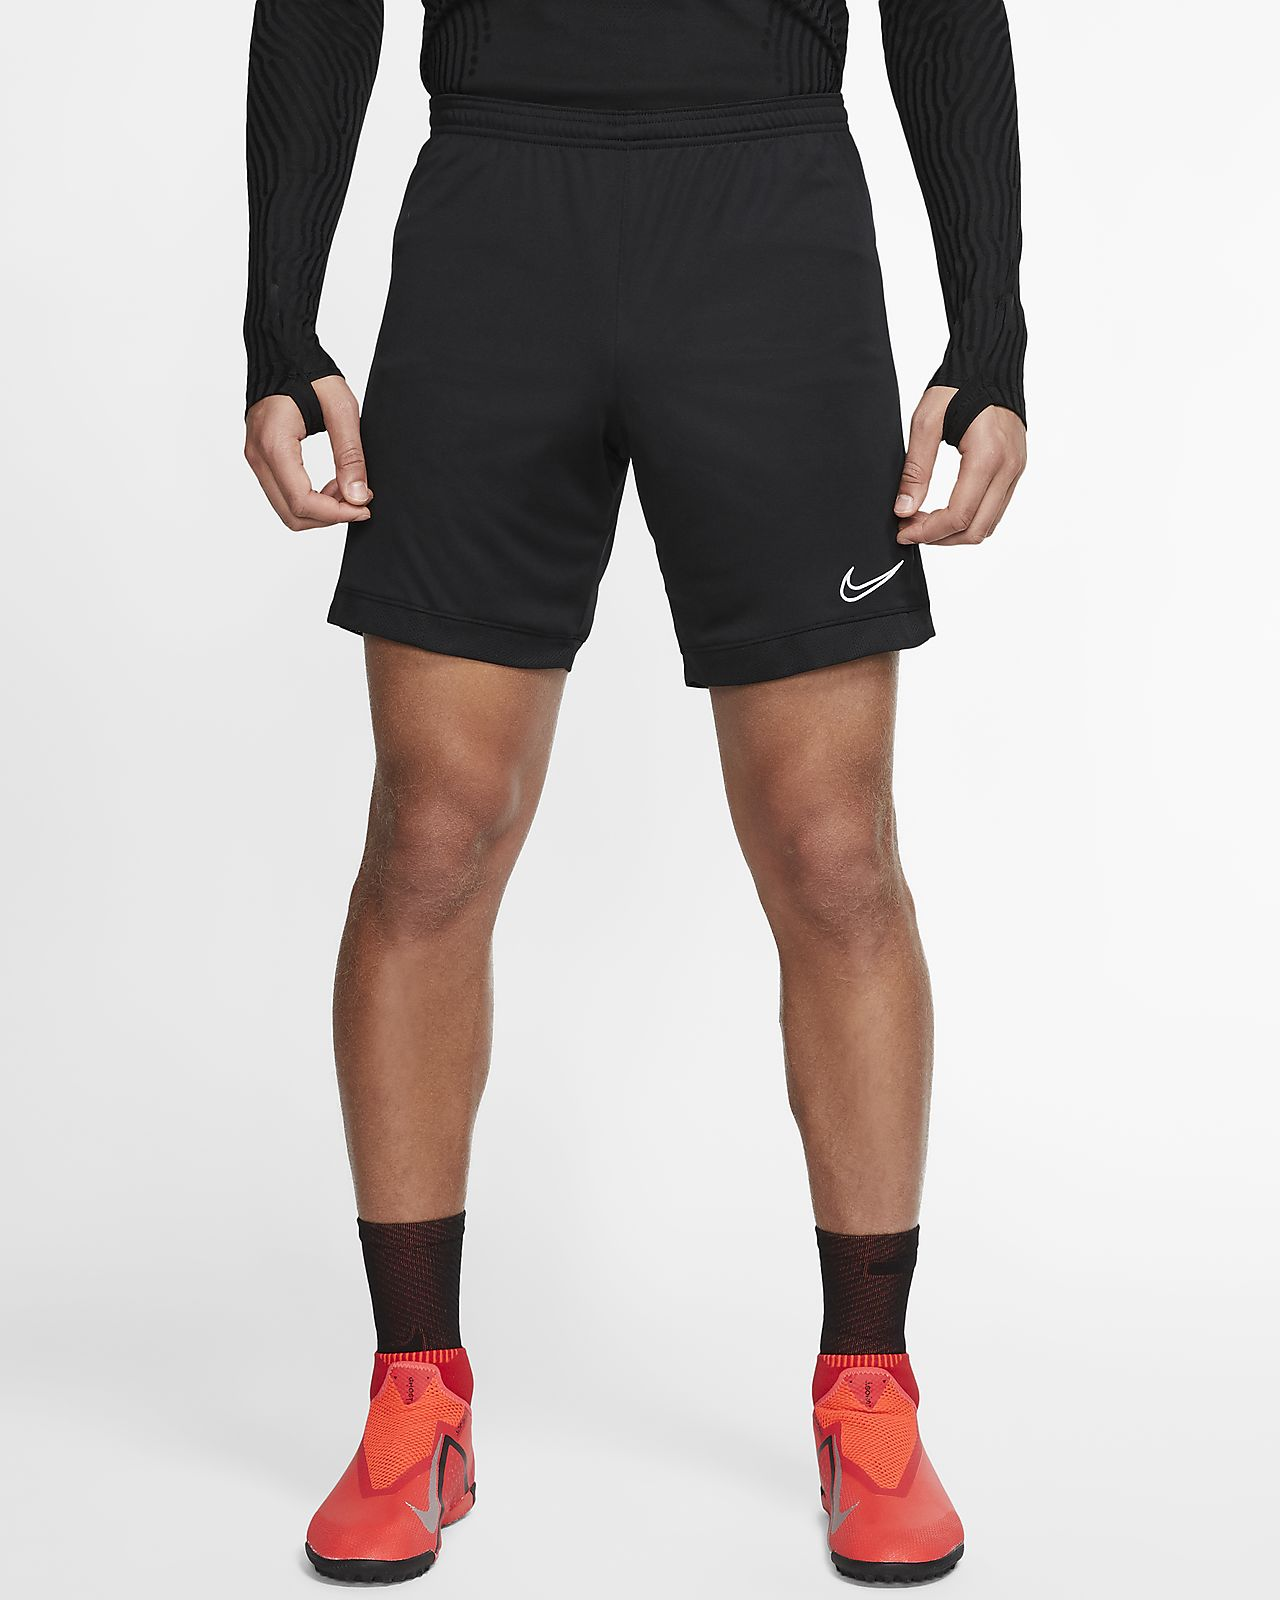 Short de football Nike Dri-FIT Academy pour Homme